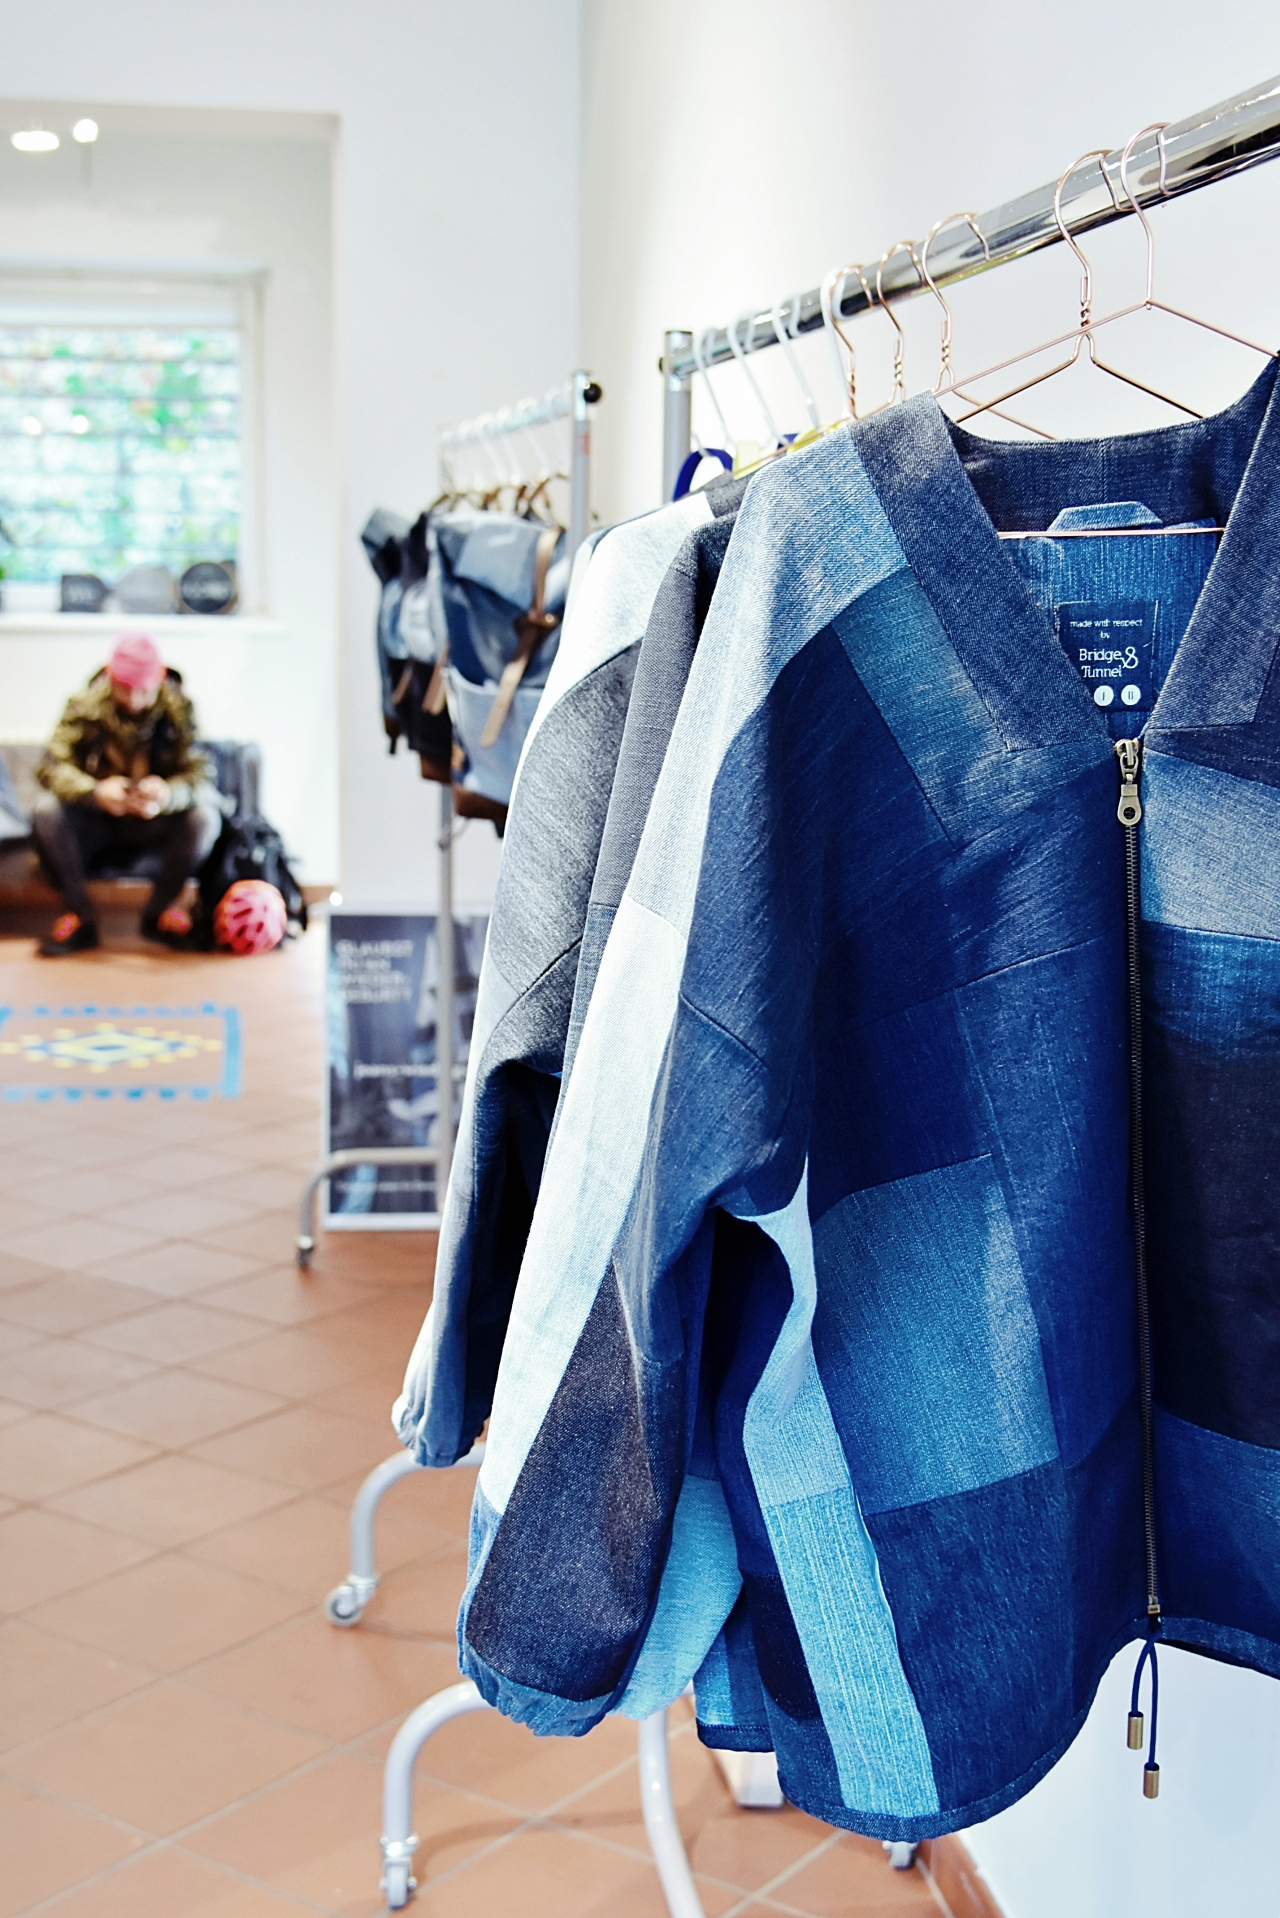 Sustainable Fashion | Hamburg Tipp - Bridge & Tunnel PopUp Store und die Wiedergeburt der Jeans – recycled Denim Accessoires | luziapimpinella.com